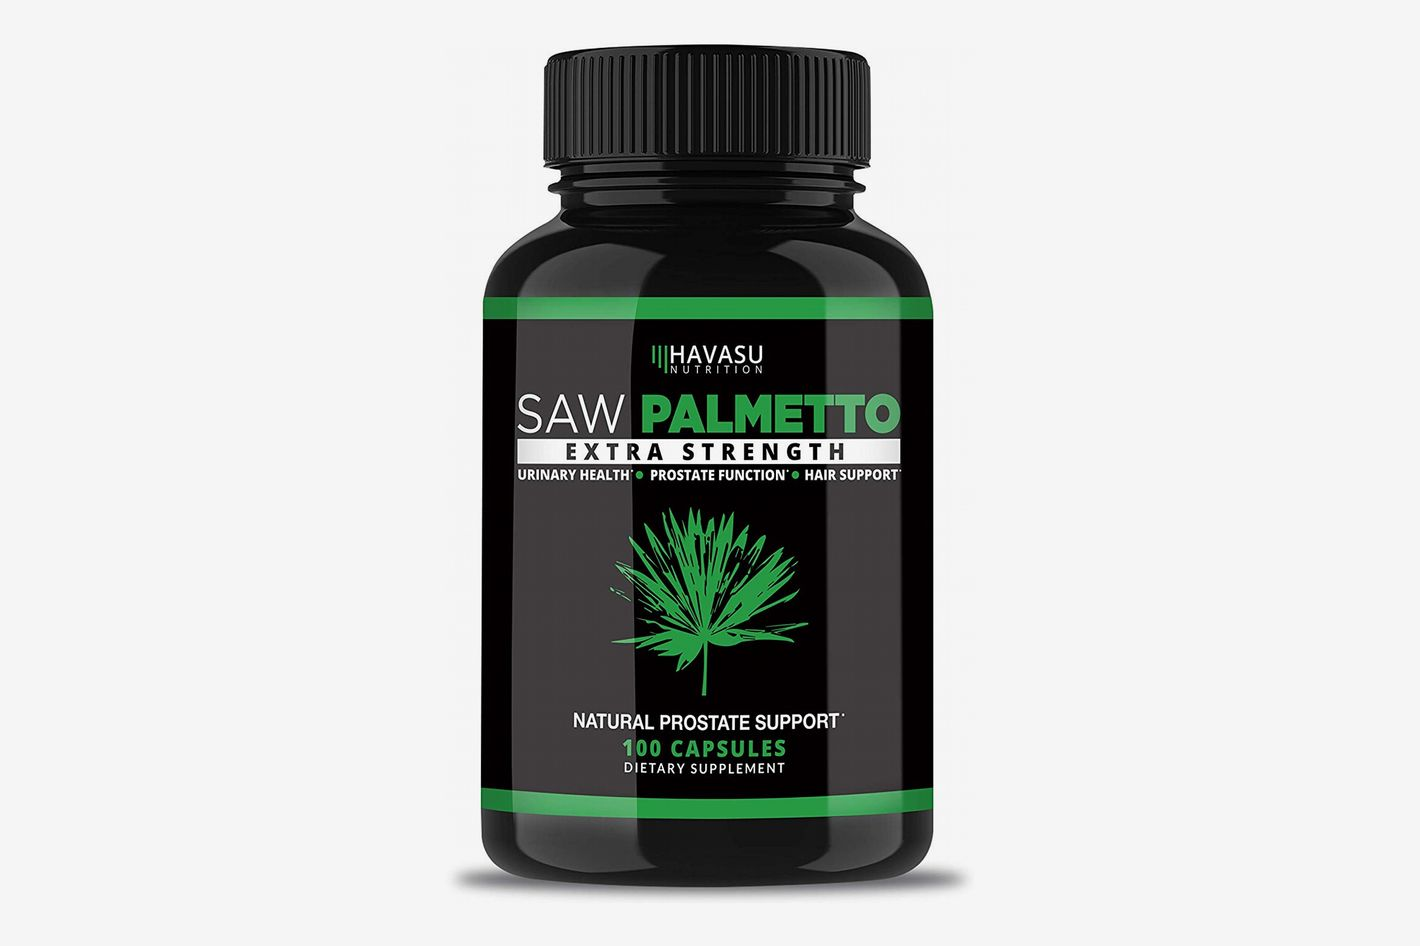 Saw Palmetto Supplement 100 Capsules